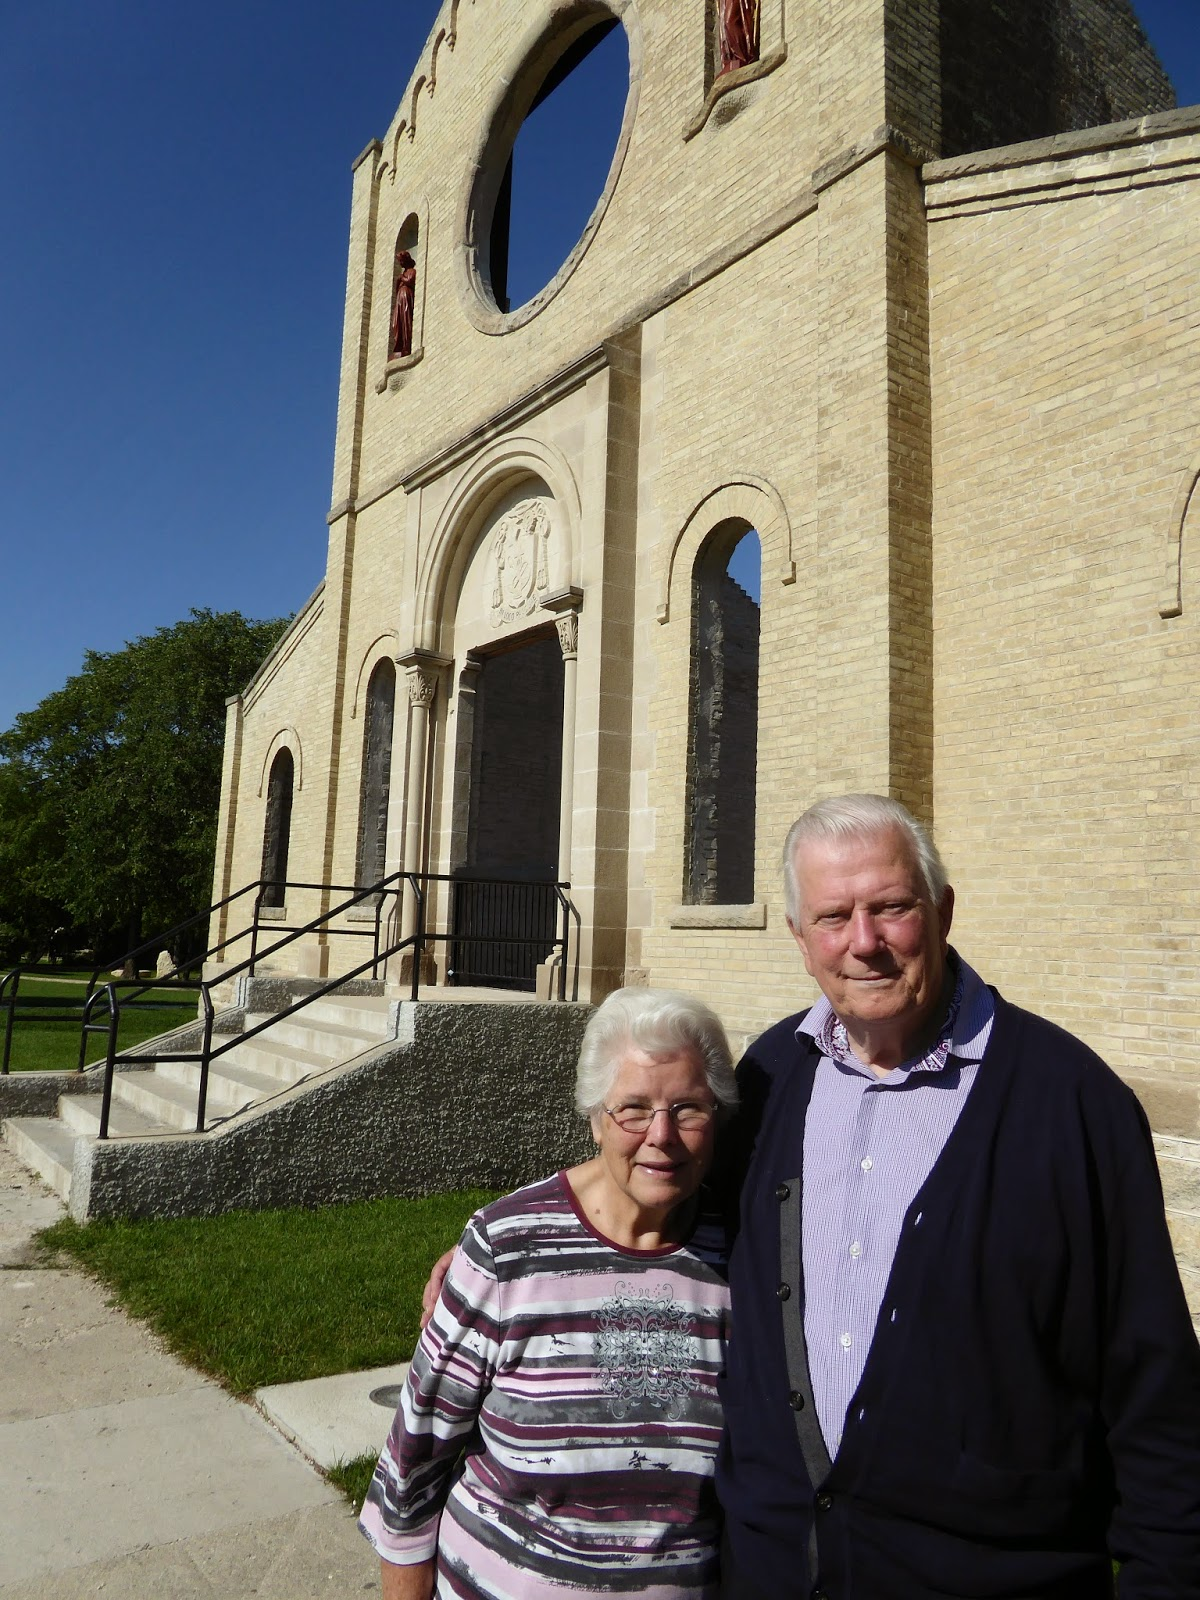 Bill & Shirley Loewen: Philanthropists, Advocates, Volunteers, and Community Leaders